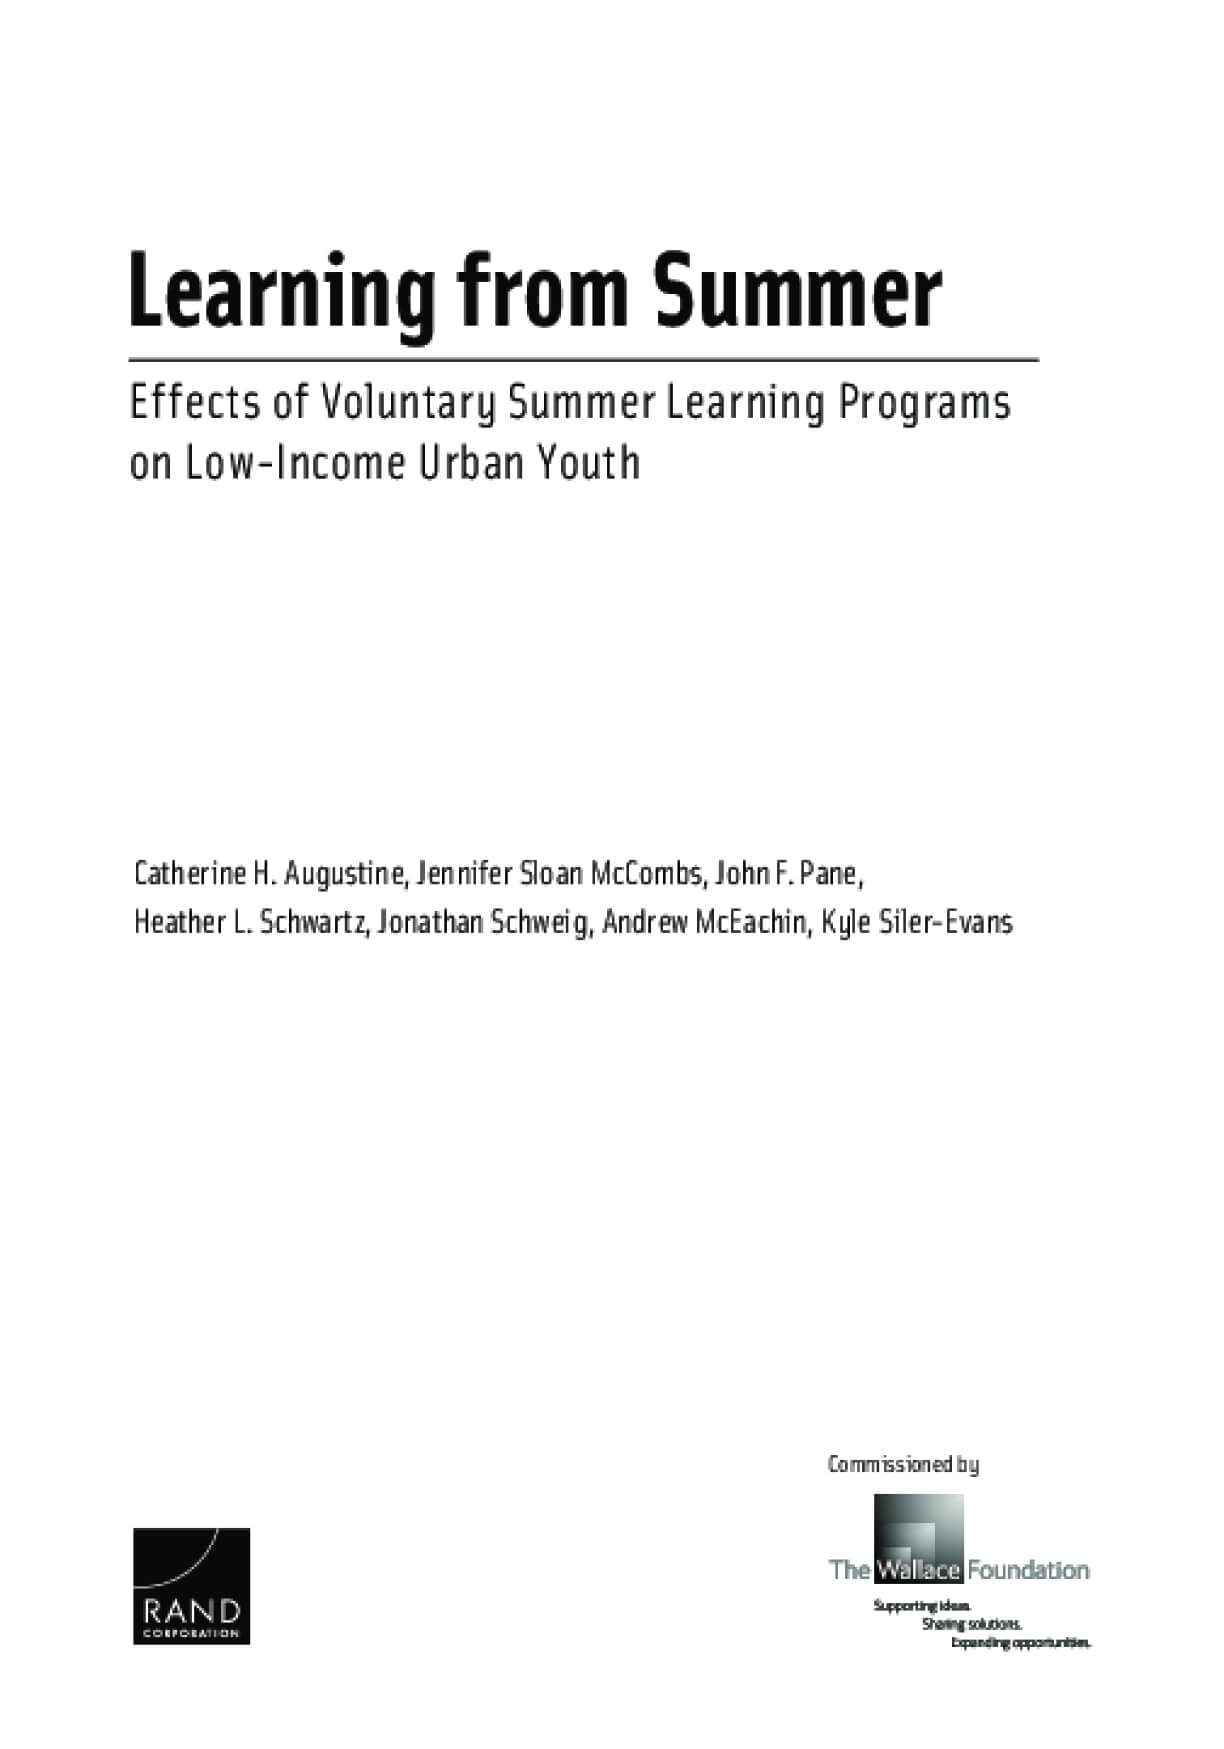 Learning From Summer: Effects of Voluntary Summer Learning Programs on Low-Income Urban Youth